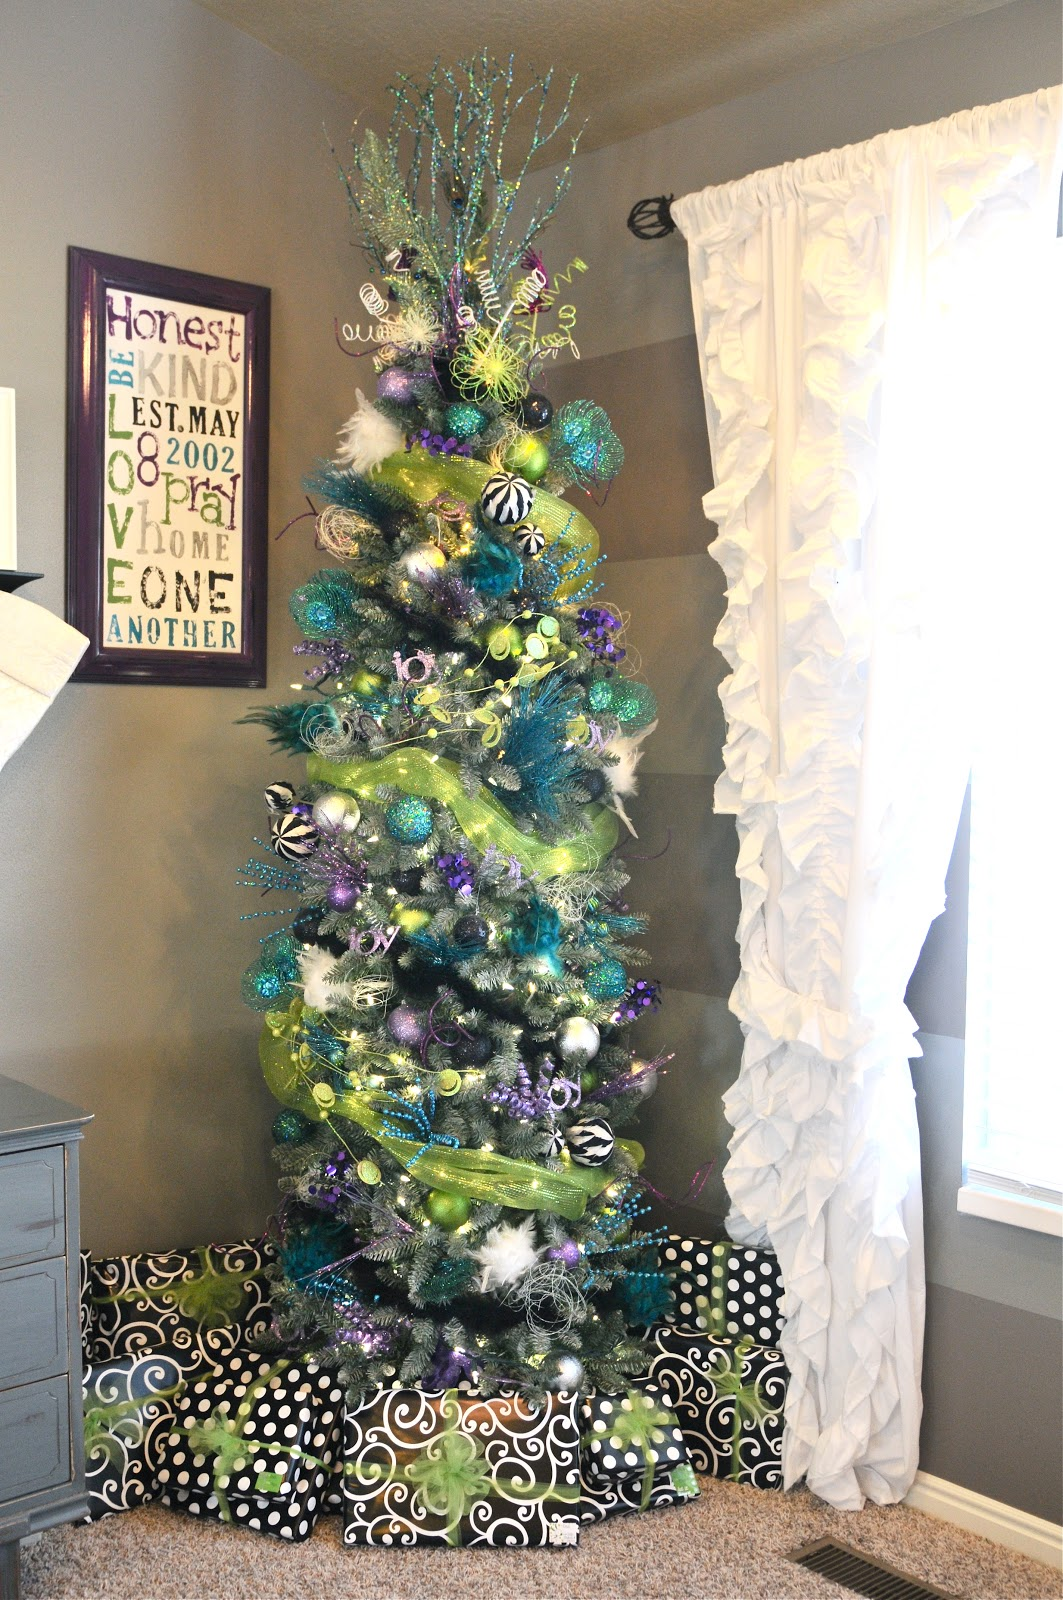 wednesday december 19 2012 image number 1 of decorating slim christmas tree ideas